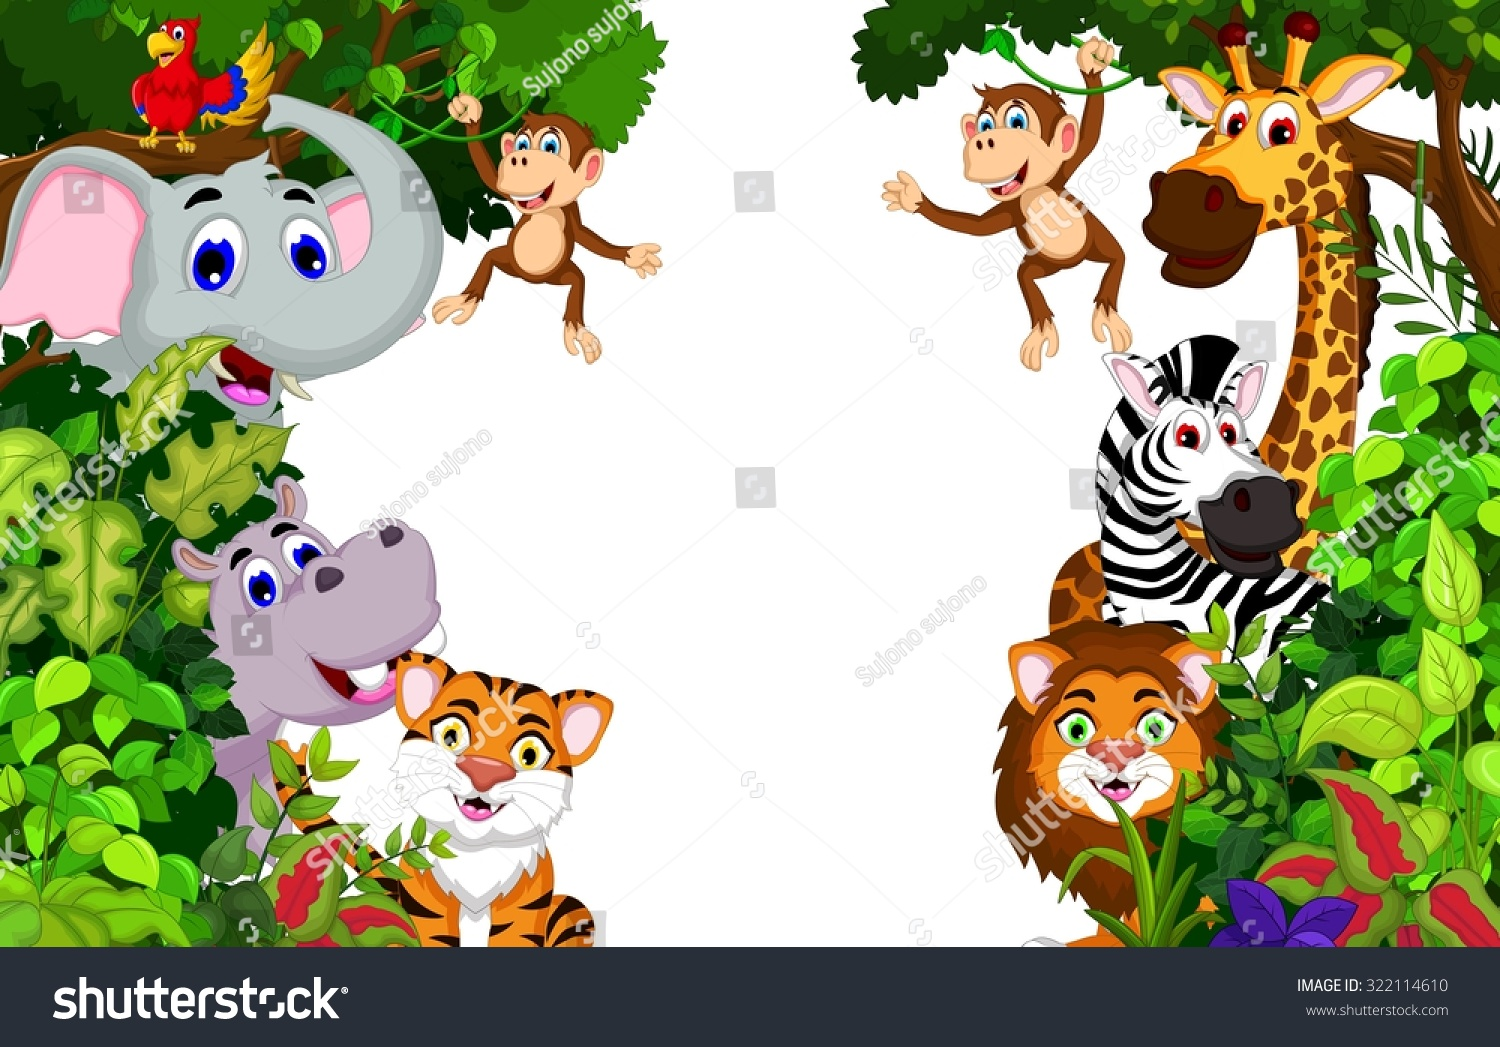 Funny Animal Cartoon Forest Background Stock Vector